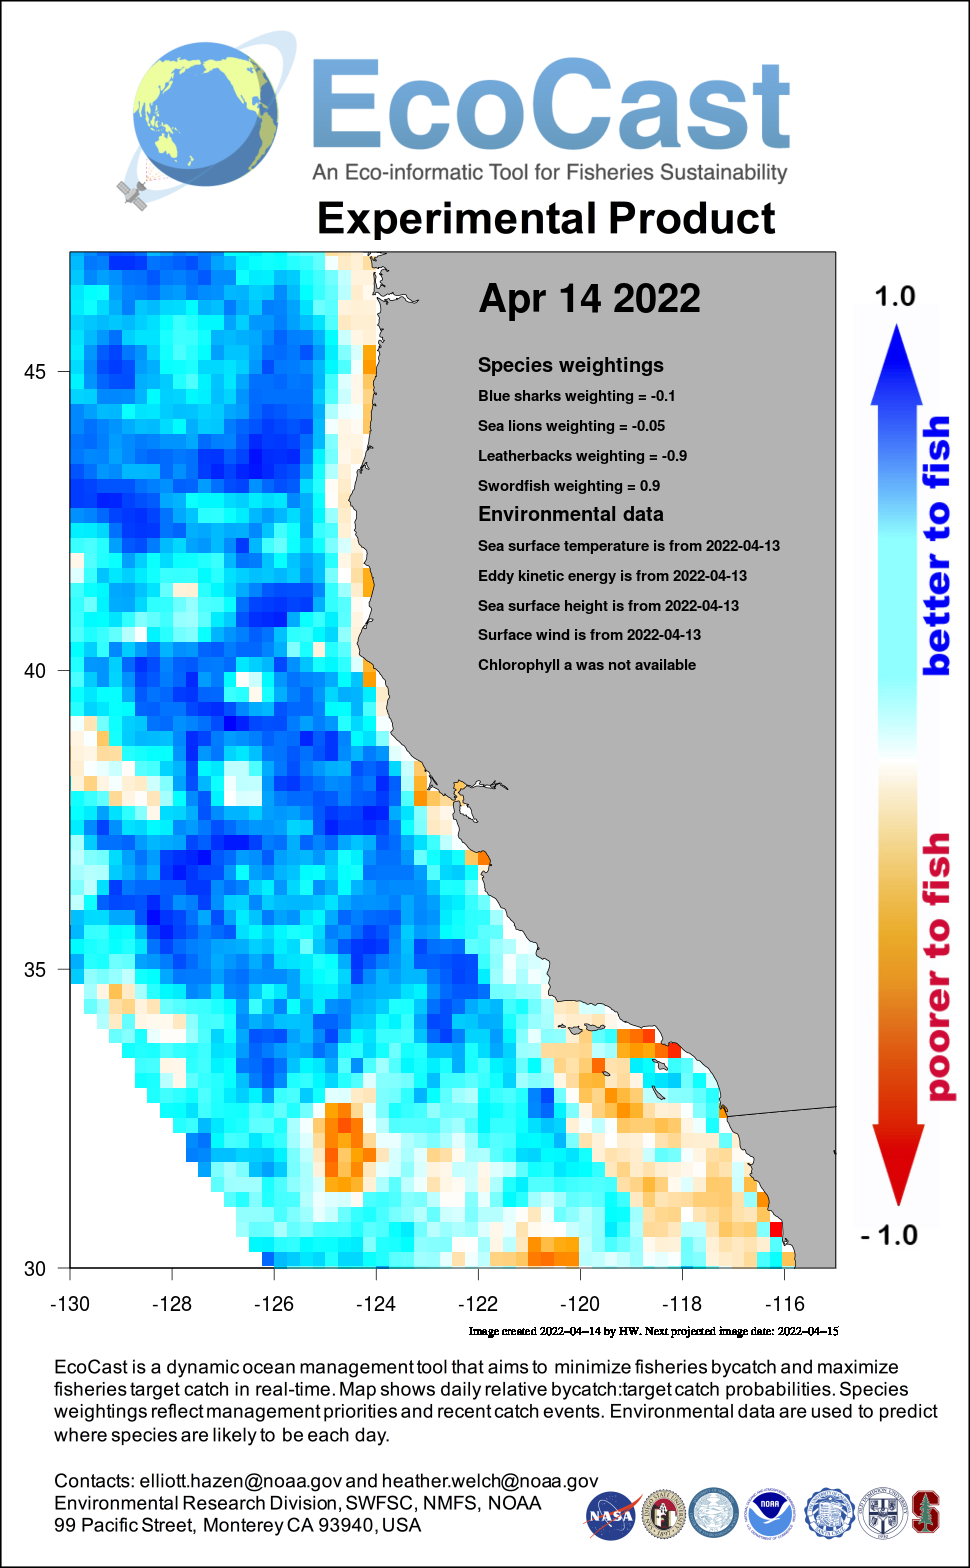 Mean sea surface temperature off Southern California - 5 days ago